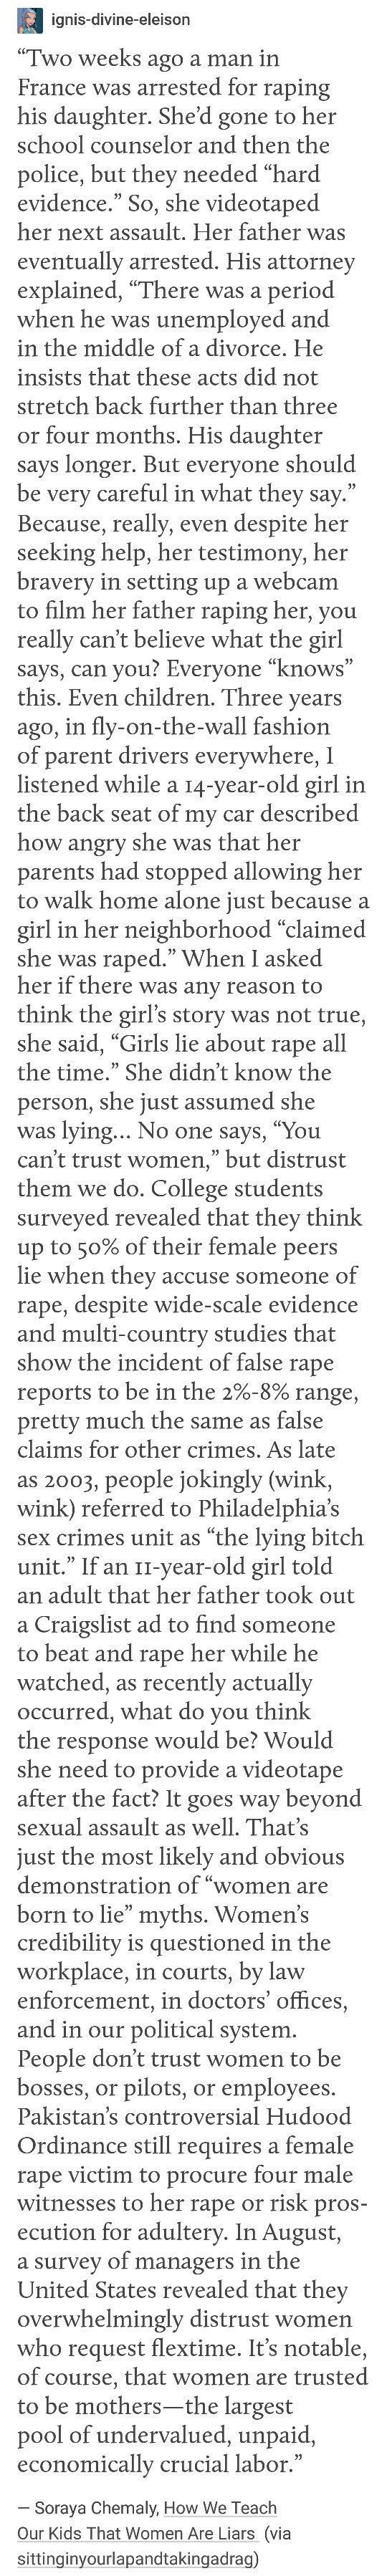 Women's credibility is questioned in the workplace, in courts, by law enforcement, in doctor's offices, and in our political system. When I was younger, after I had recently come out about my grandfather molesting me, I was told, These cases are difficult because you need evidence. I thought, if only I had stuck around long enough to videotape him. It's extremely disheartening to know that, either way, it wouldn't have made a difference - #cases #courts #credibility #difference #difficult